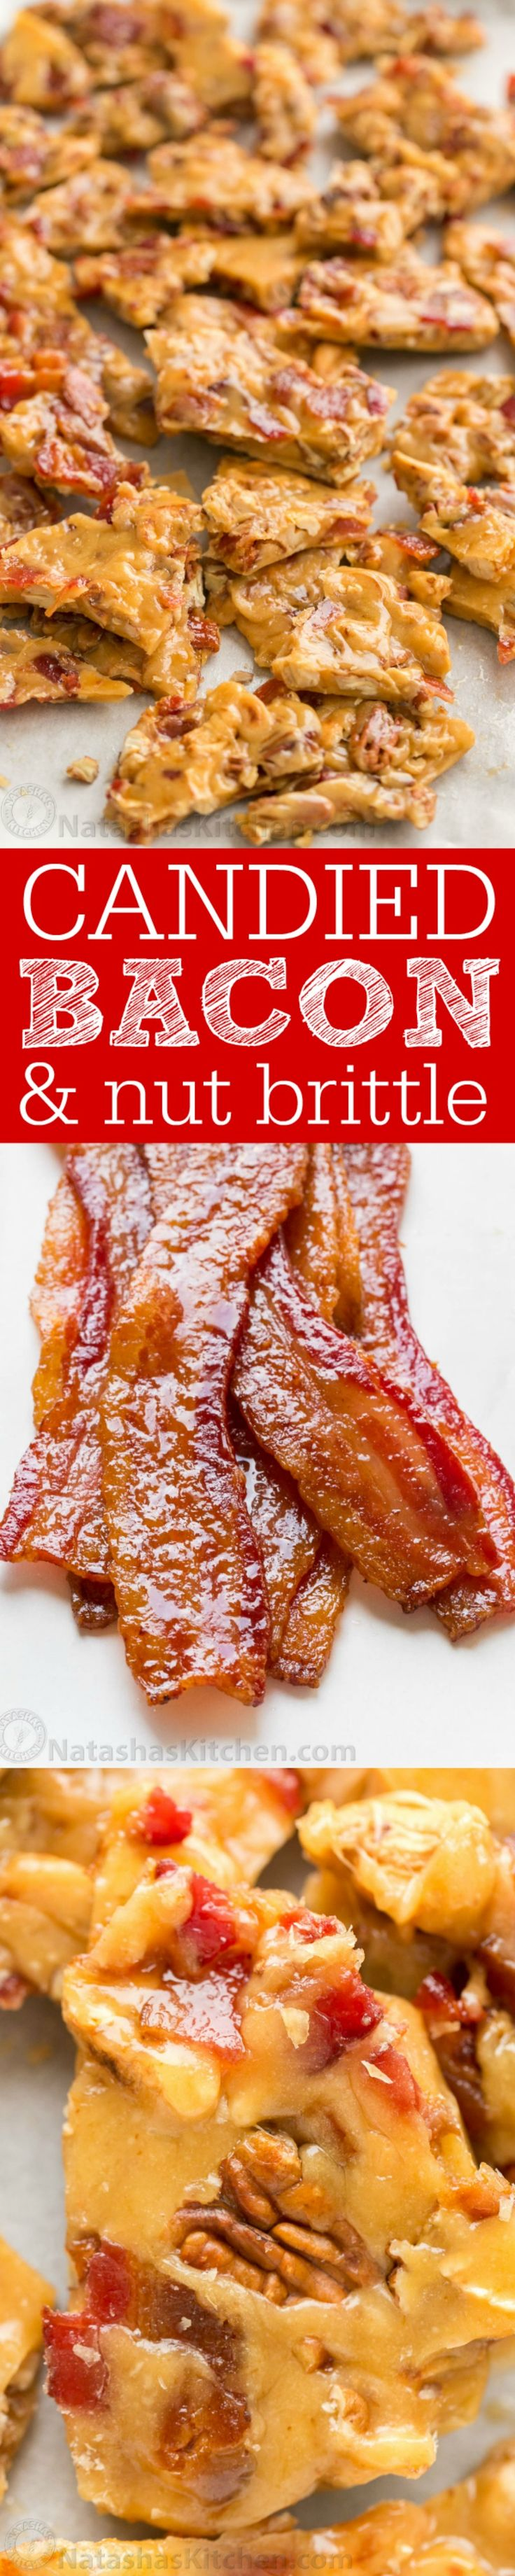 This Candied Bacon Brittle is loaded with nuts and candied bacon. It's unusual but CRAZY GOOD! Candied Bacon Brittle is a wonderful homemade gift idea! Recipe sponsored by Tabasco | natashaskitchen.com